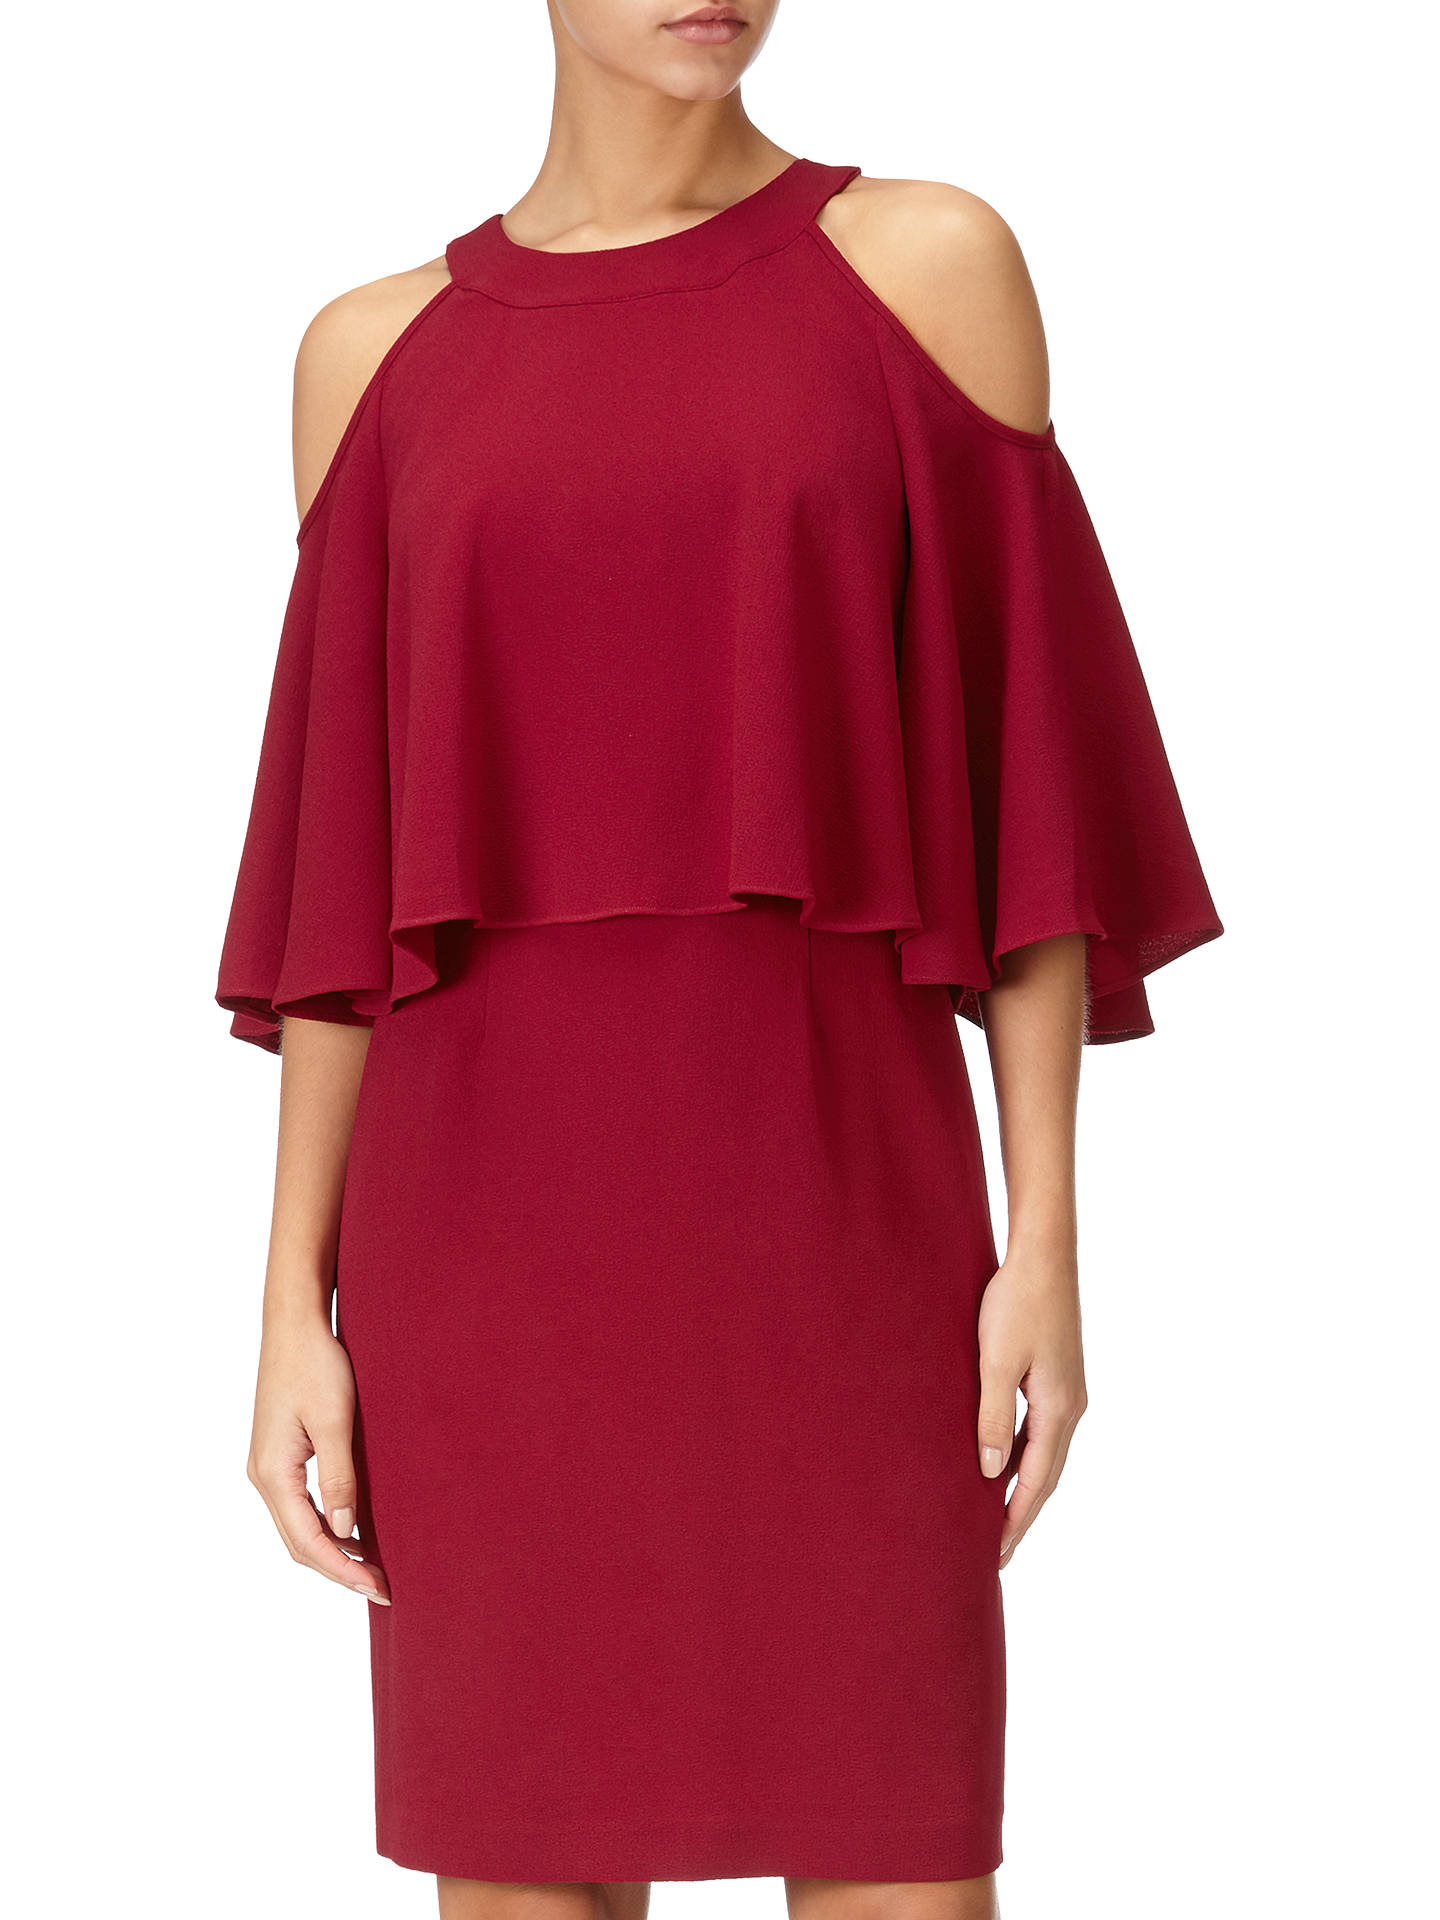 BuyAdrianna Papell Cold Shoulder Sheath Dress, Cranberry, 8 Online at johnlewis.com